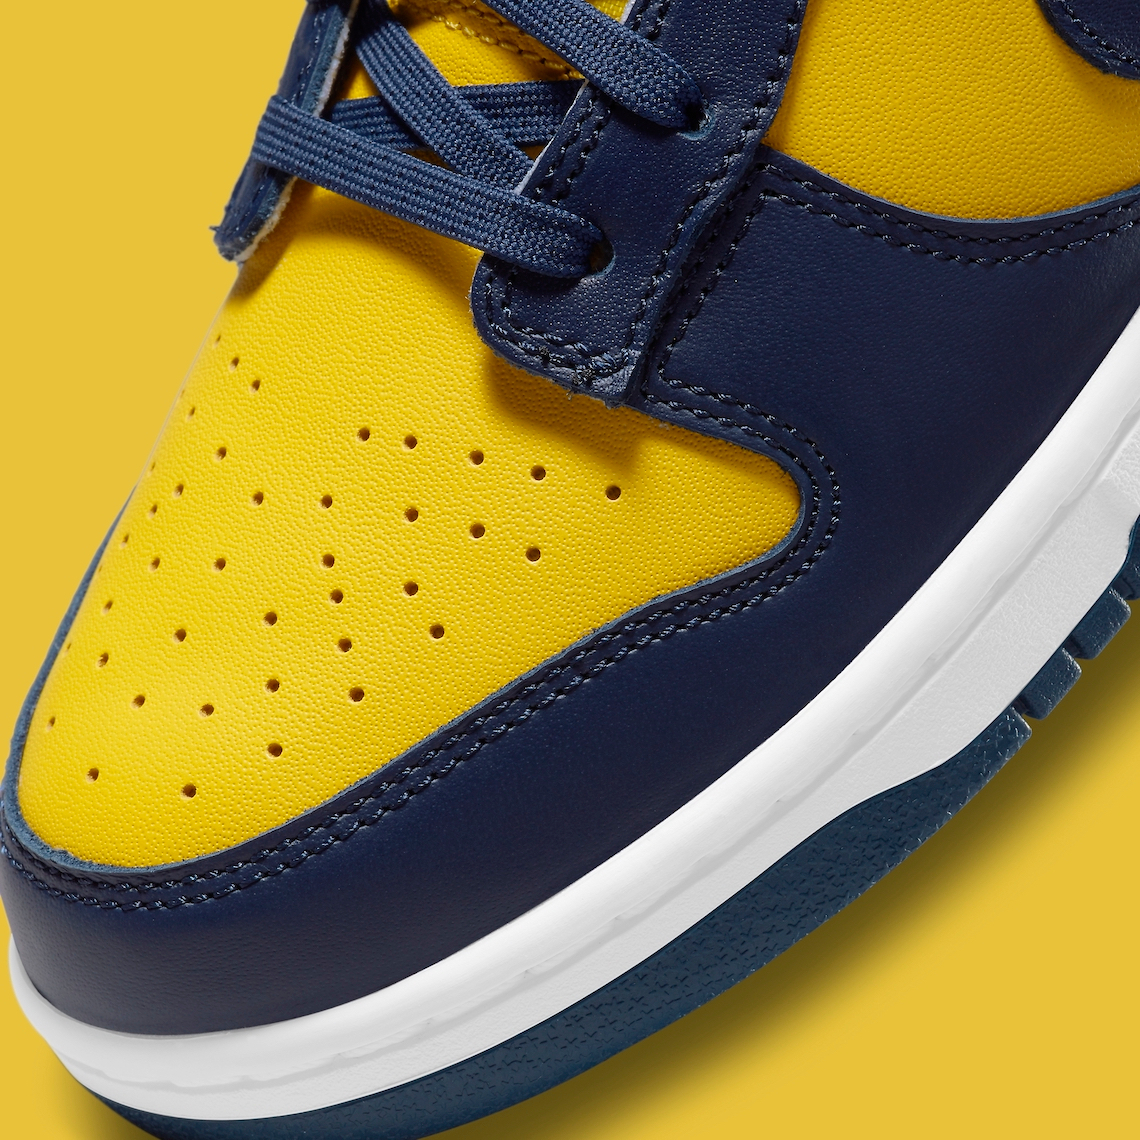 Nike Dunk Low ''Michigan'' - DD1391-700